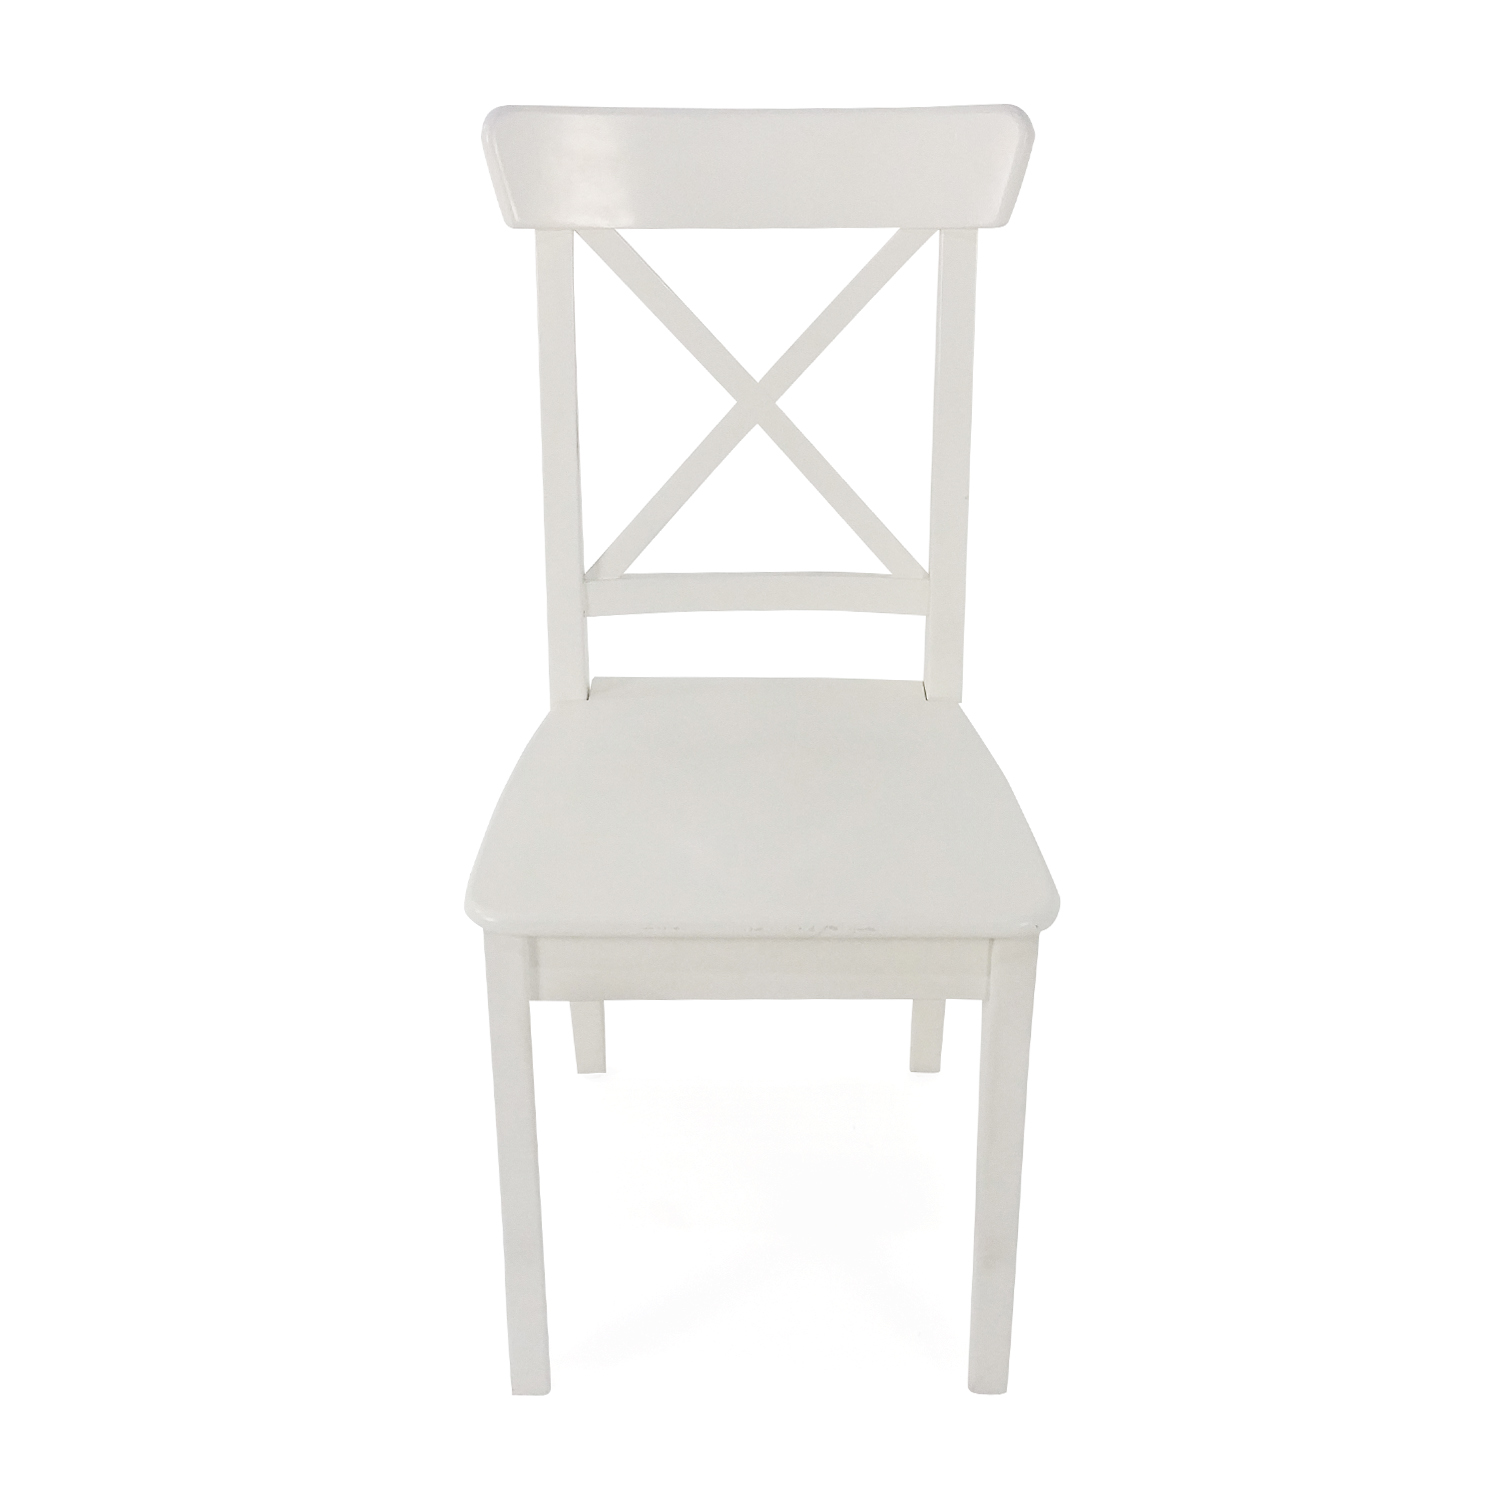 ... Ingolf White Dining Chair IKEA ...